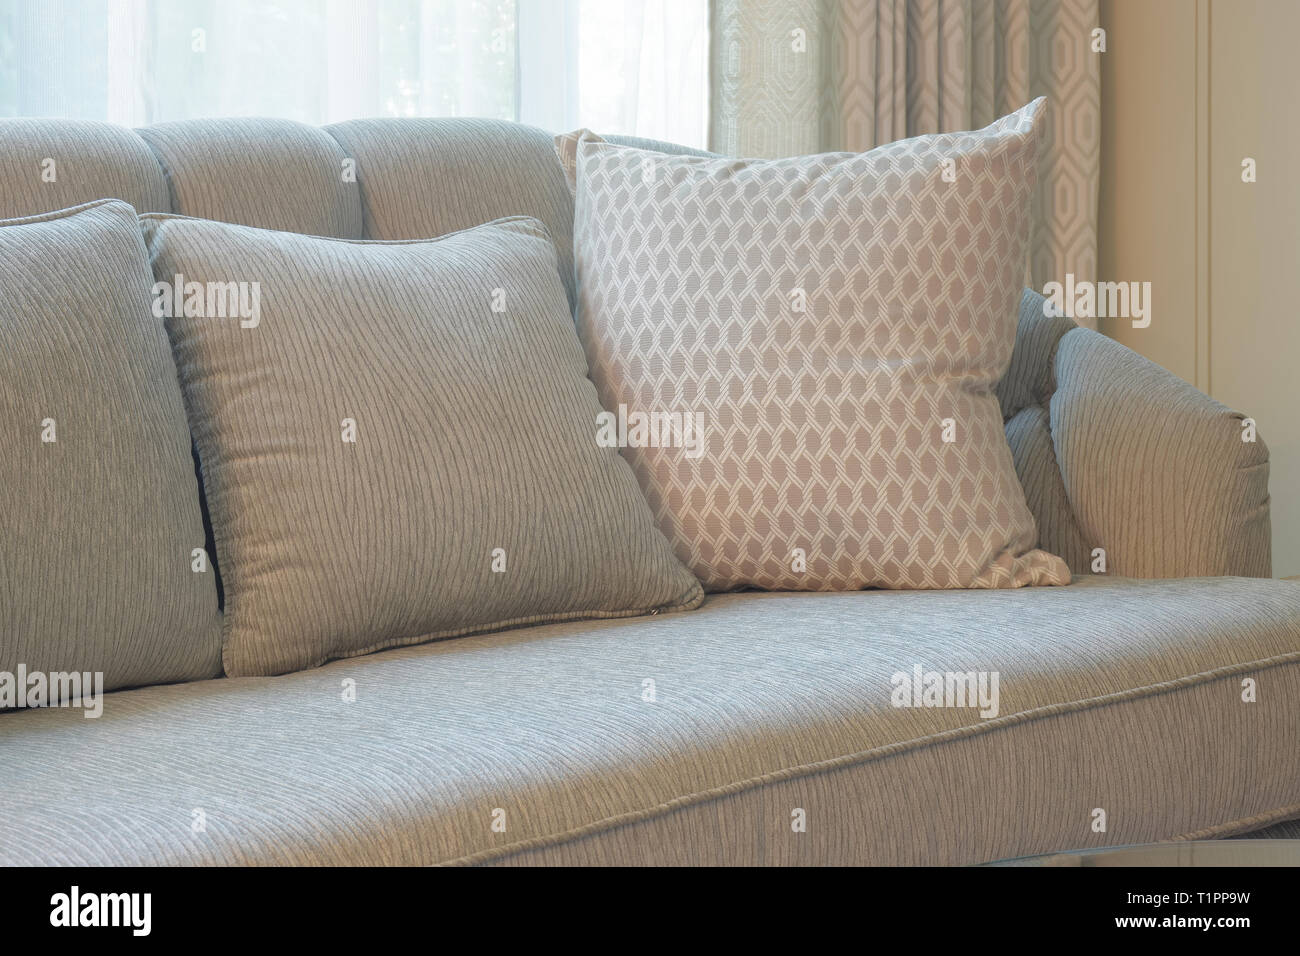 Comfy sofa with pillows in living room - Stock Image